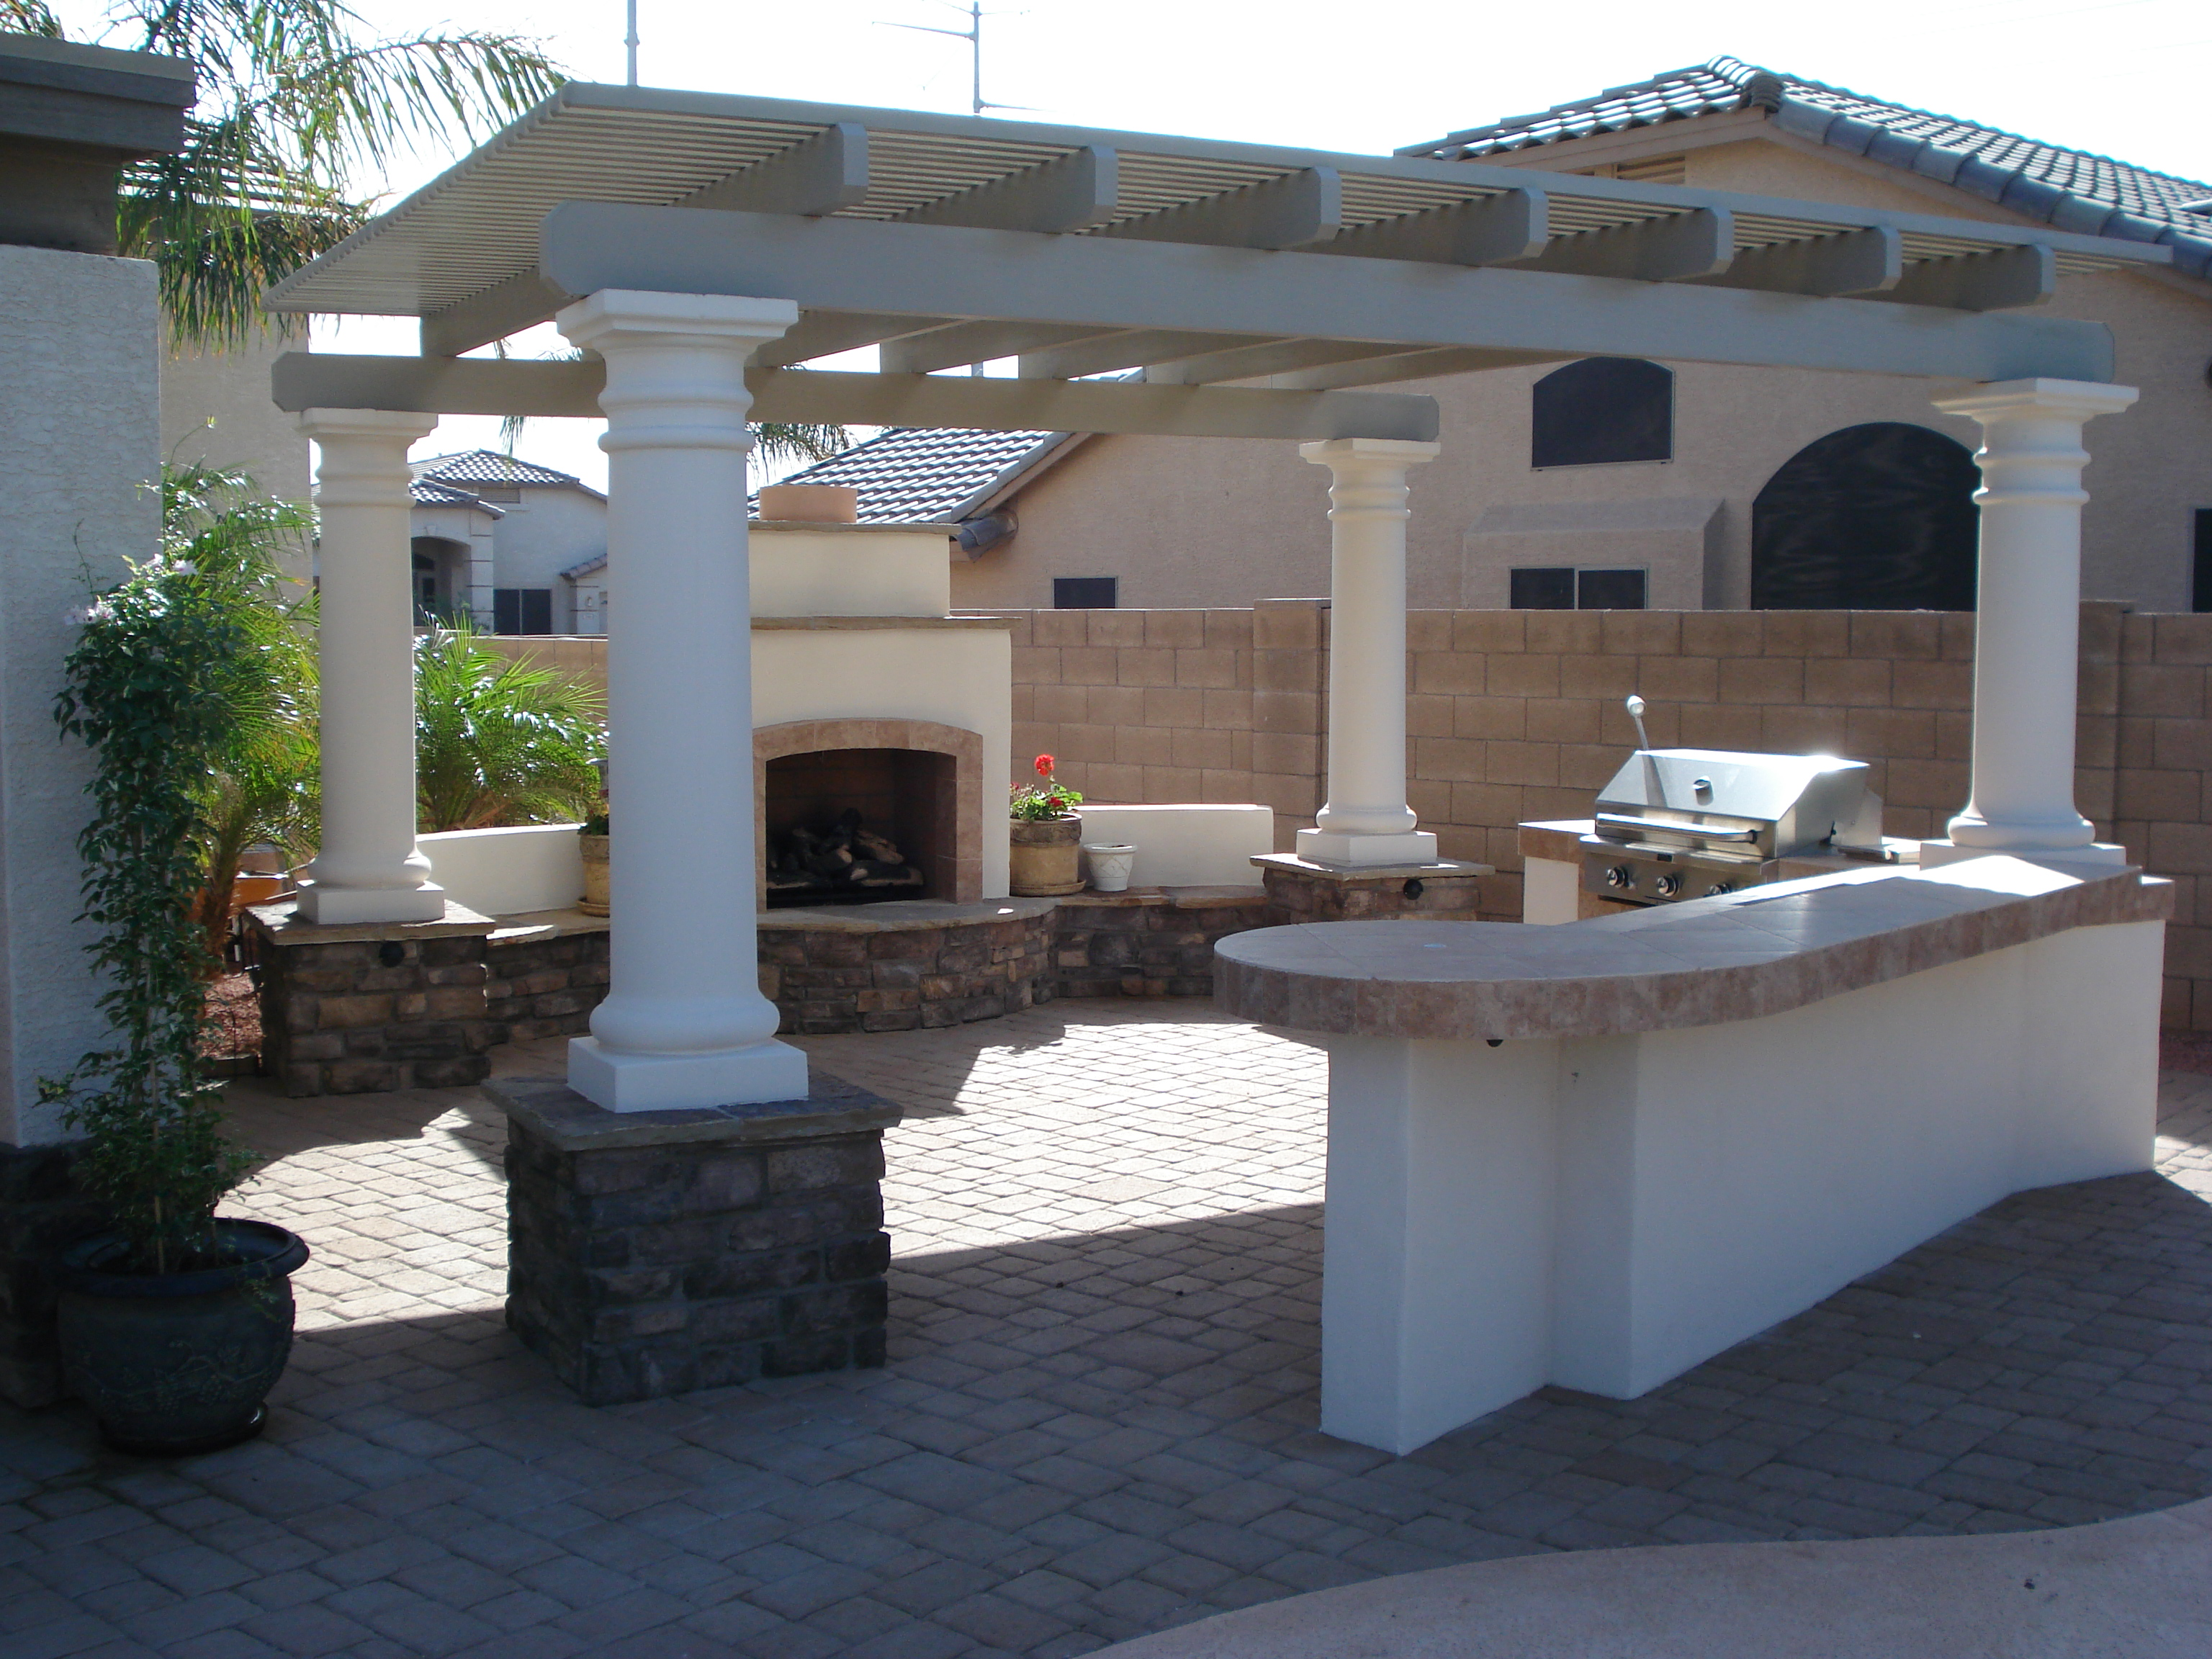 Custom trellis to match pergola landscapes by earth design - Dream Retreats Landsape Custom Pergola In Arizona